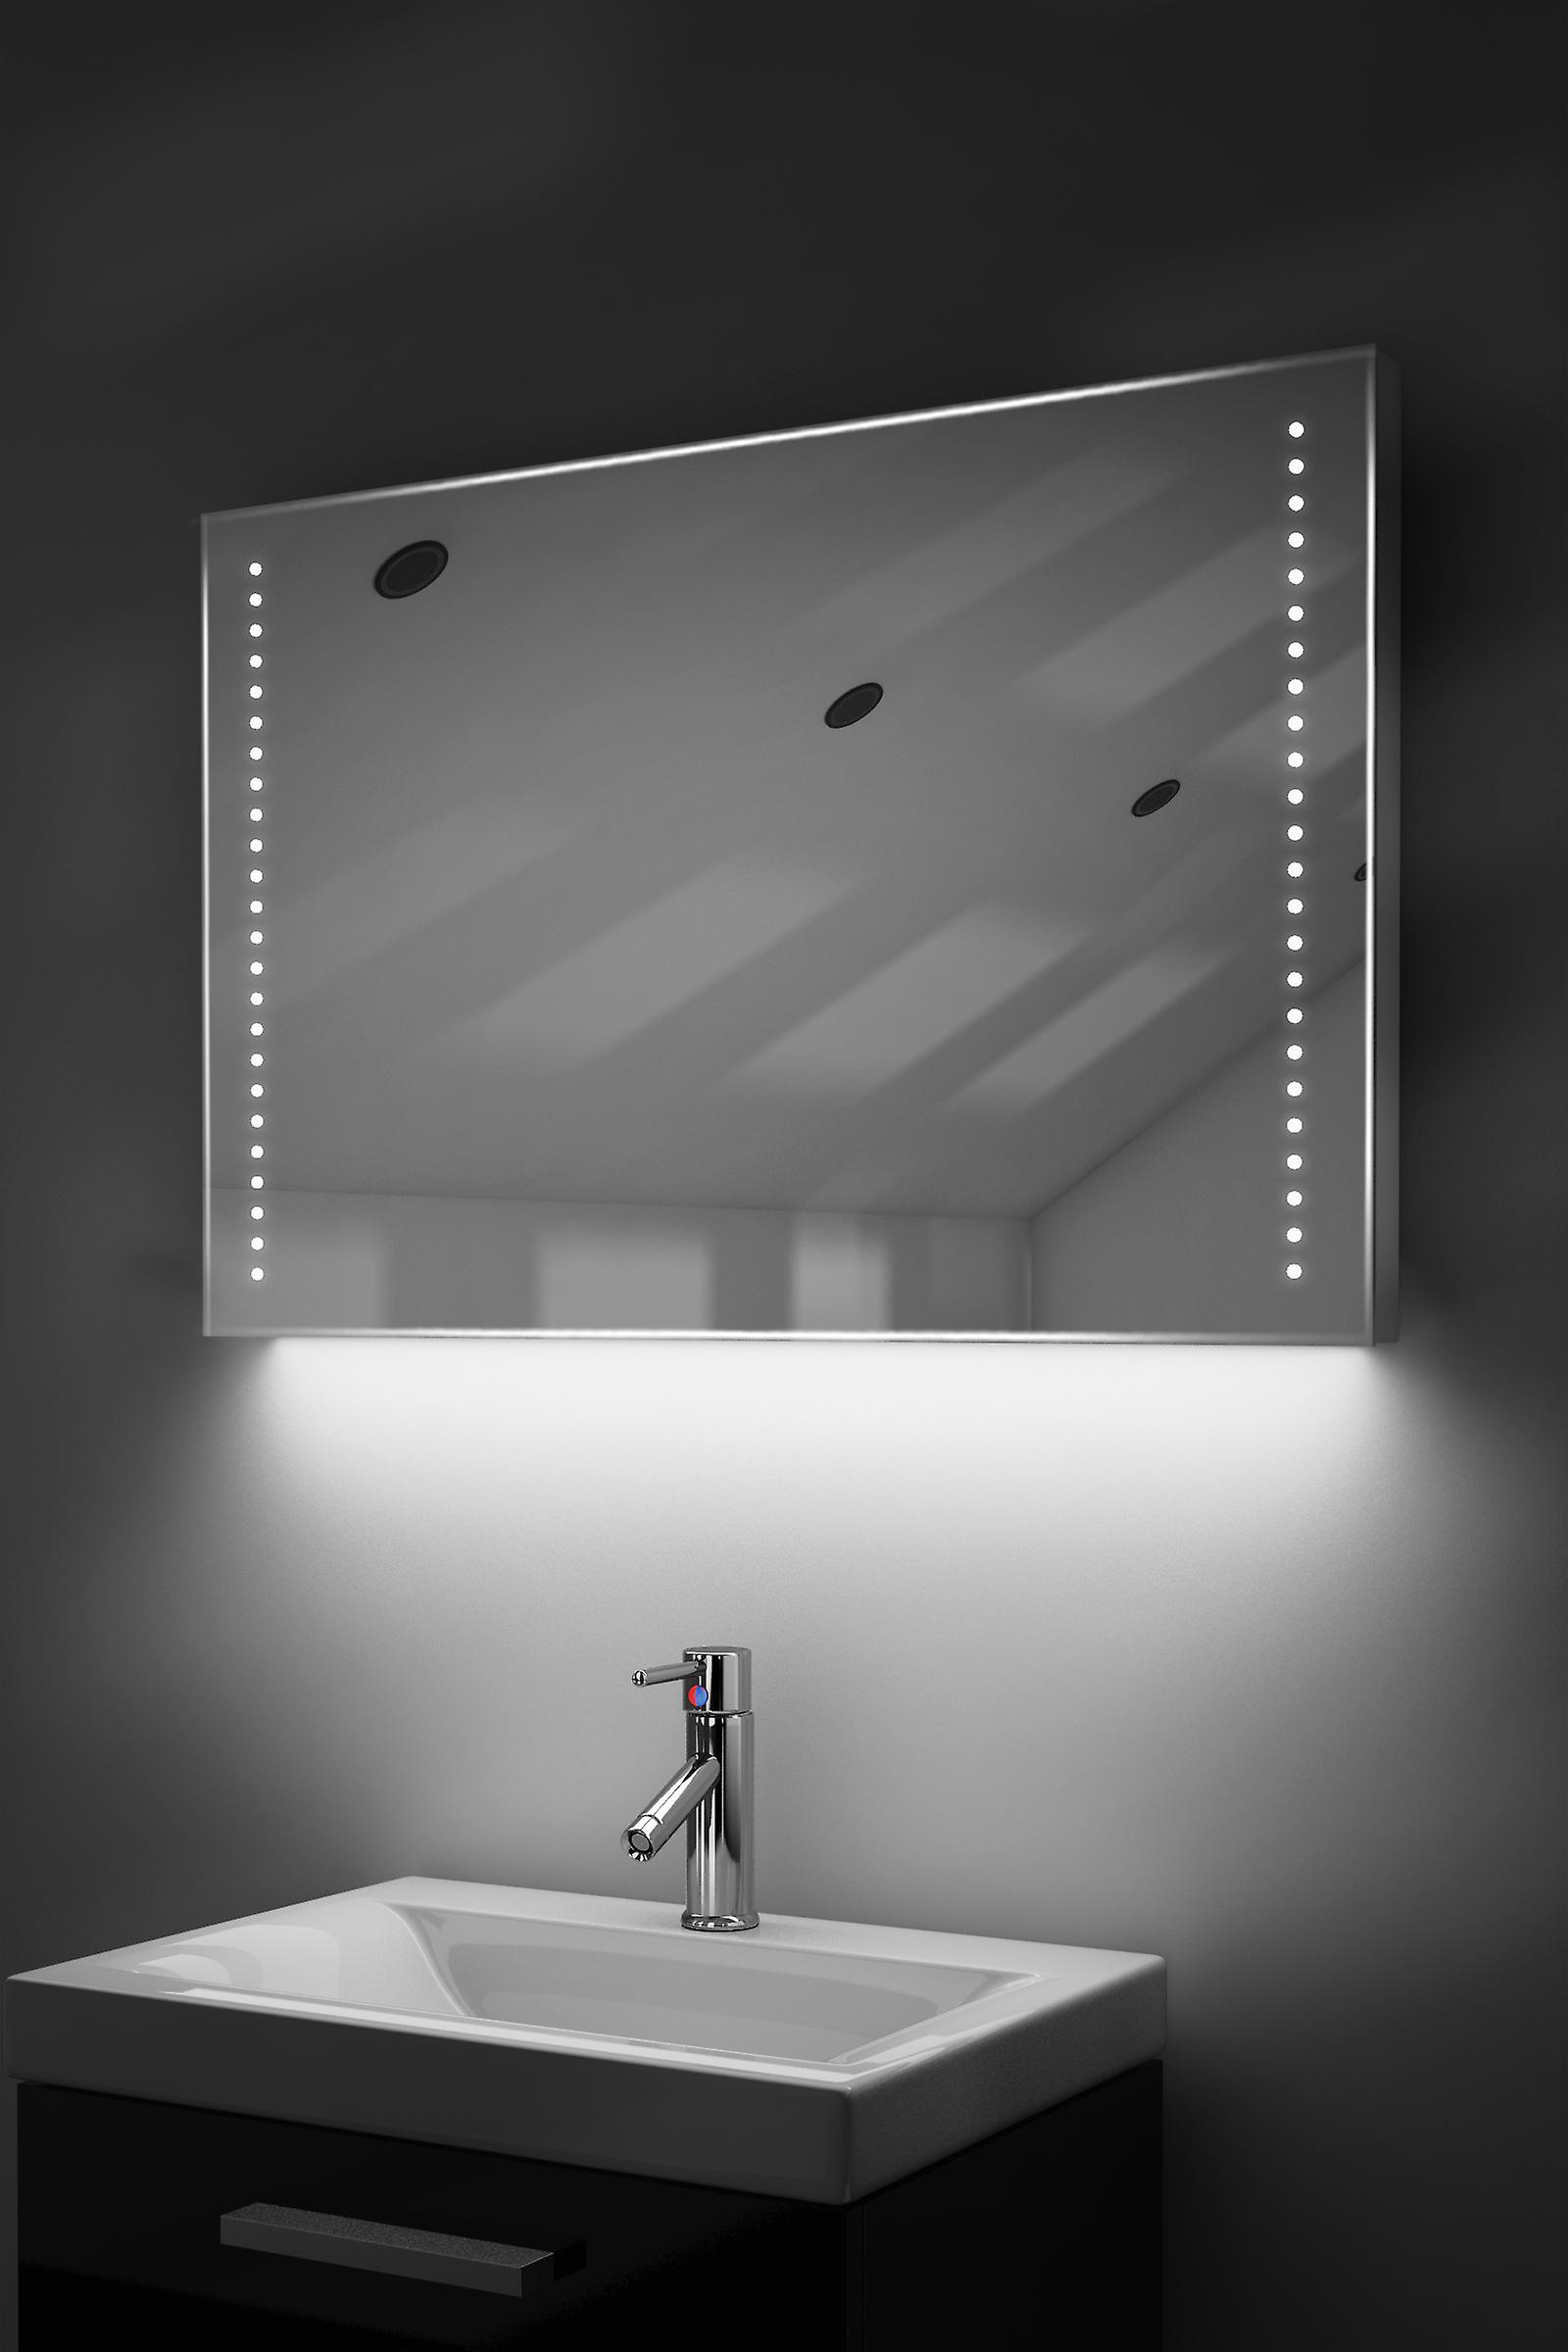 RGB k61rgb Ultra-Slim Bathroom Mirror With Demister & Sensor